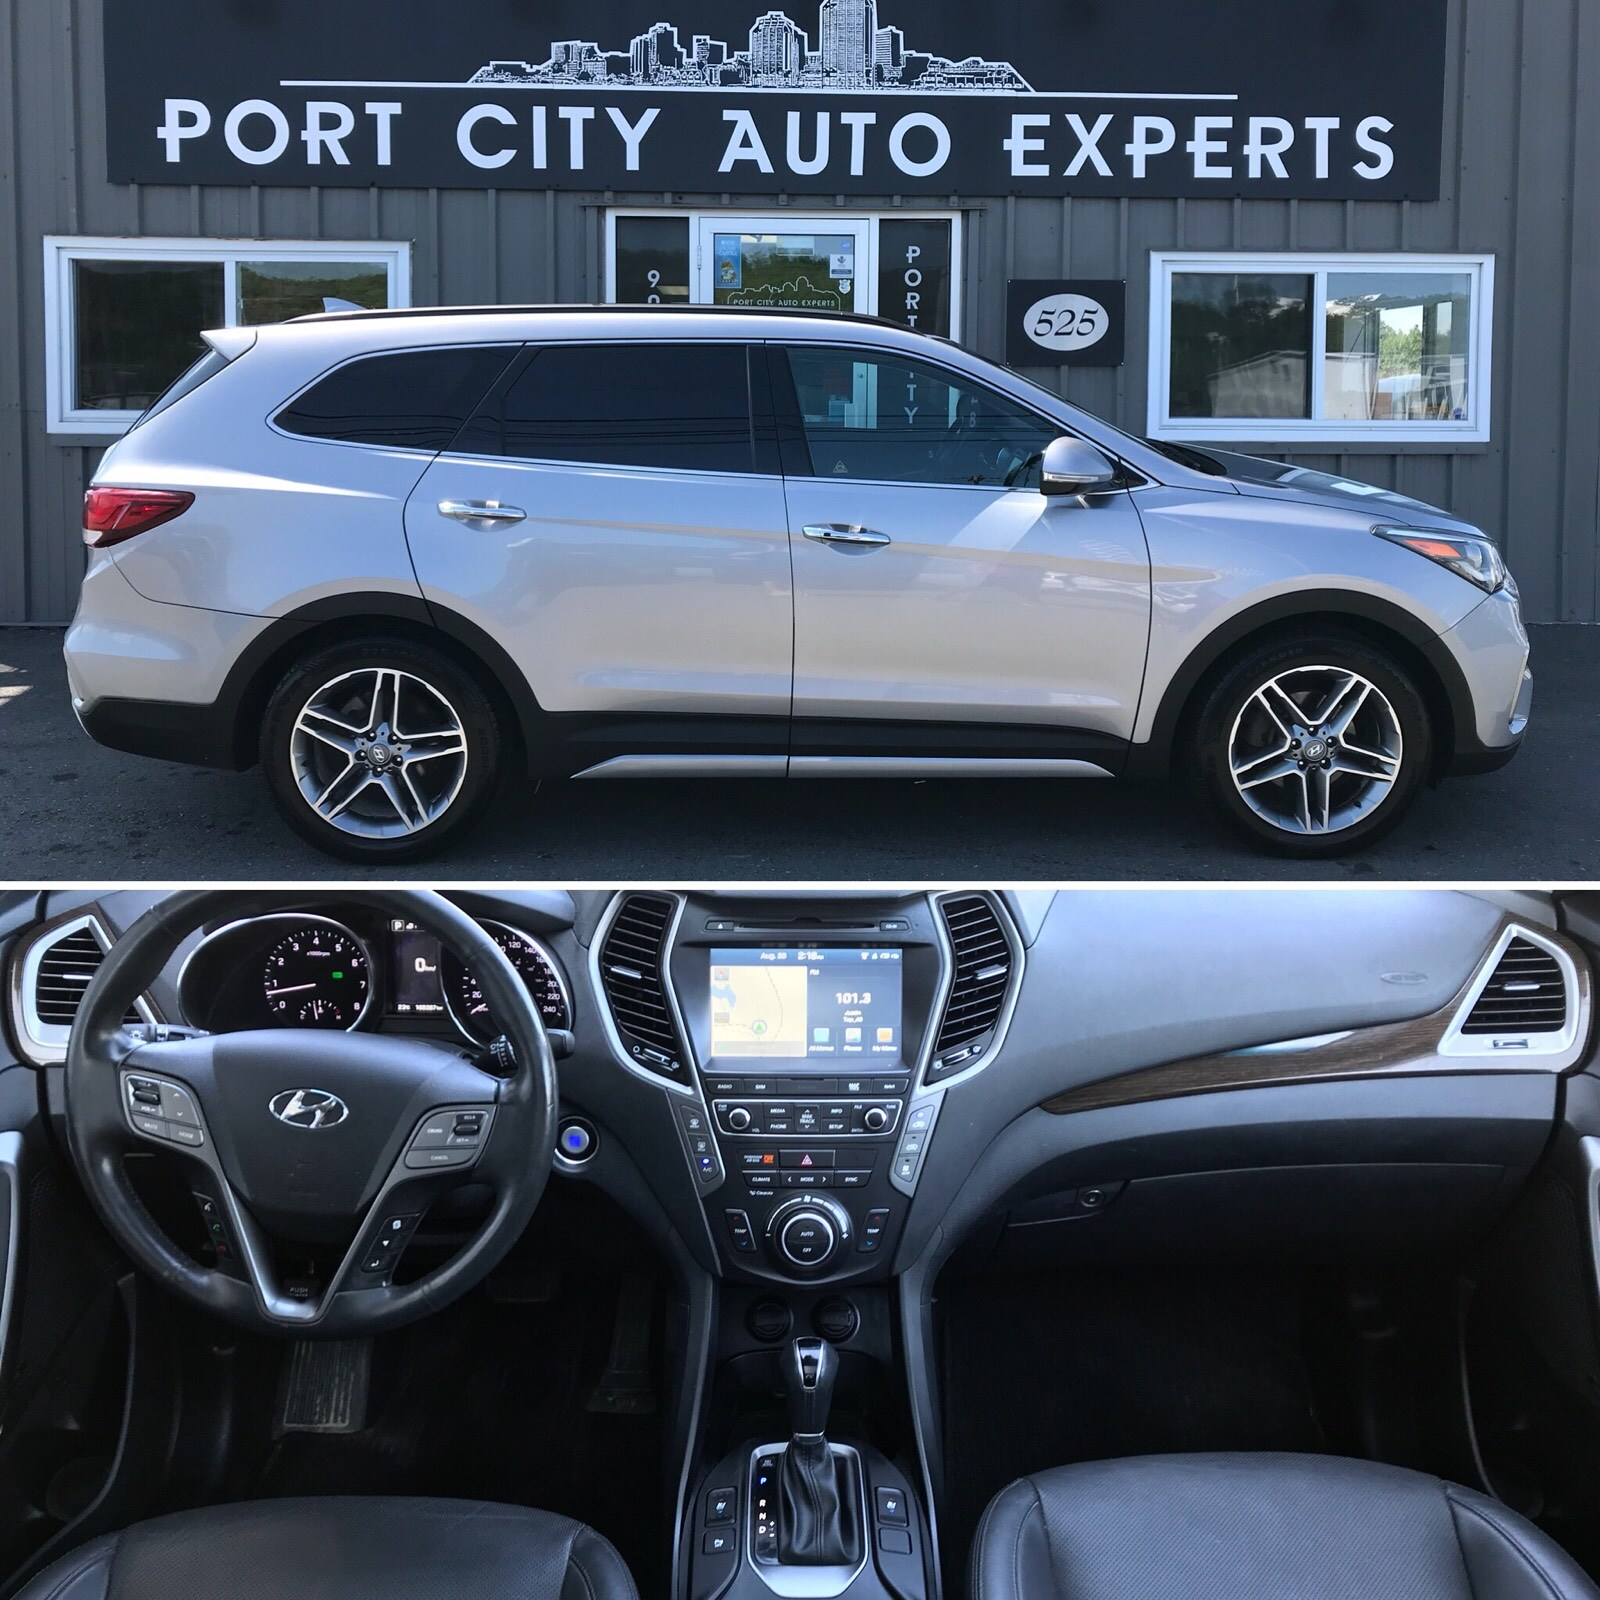 Used 2017 Hyundai Santa Fe Xl For Sale At Port City Auto Experts Vin Km8sndhf7hu187232